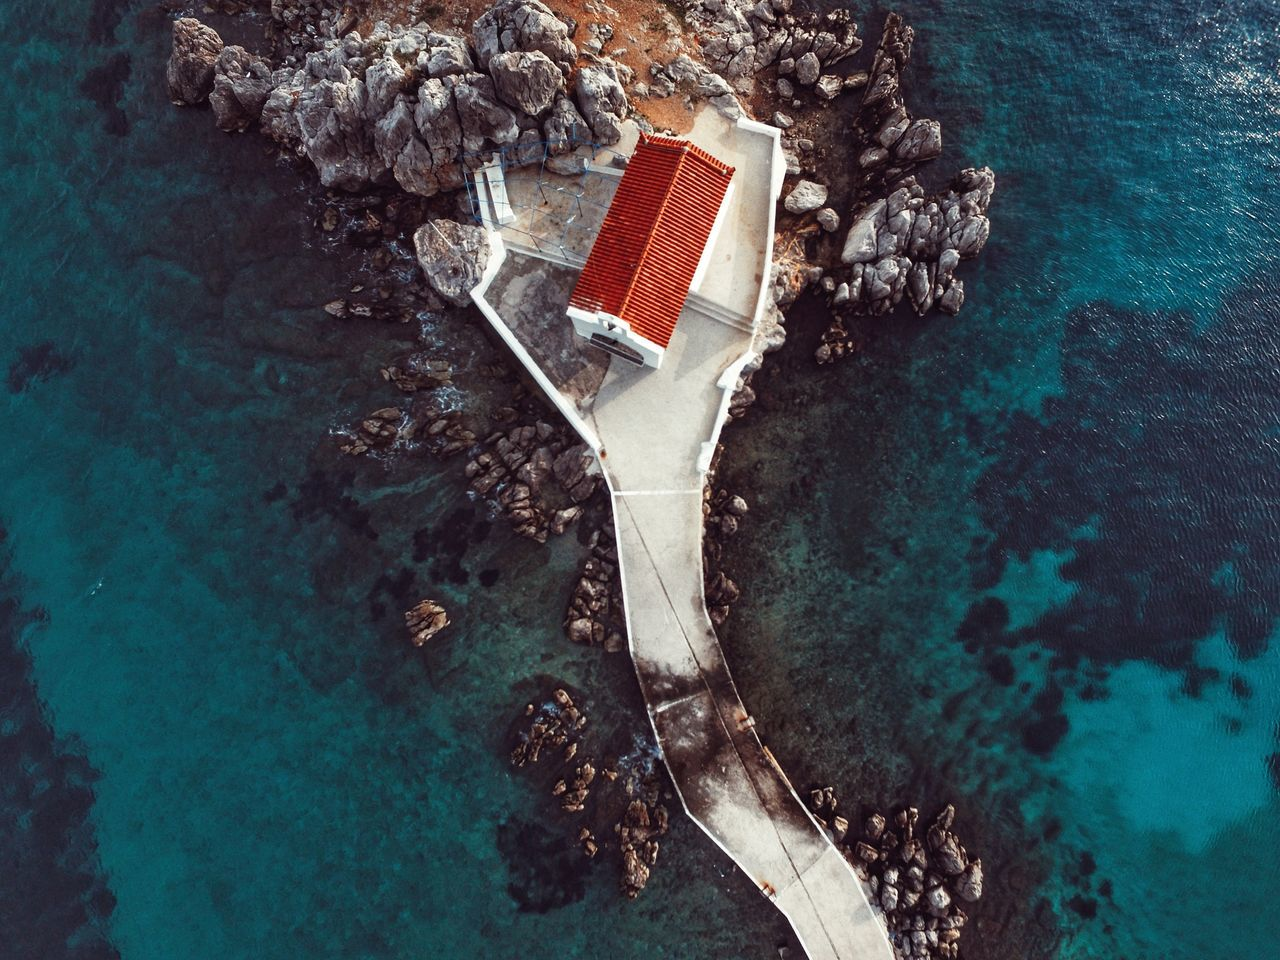 view from above Church high angle view sea and rocks Rock formation EyeEm Best Shots local landmark miles away eye4photography scenic landscapes church architecture beauty in Nature outdoors no people aerial view Aerial Shot Drone dronephotography malephotographerofthemonth turquoise water Check this out - Greek Islands chios greece